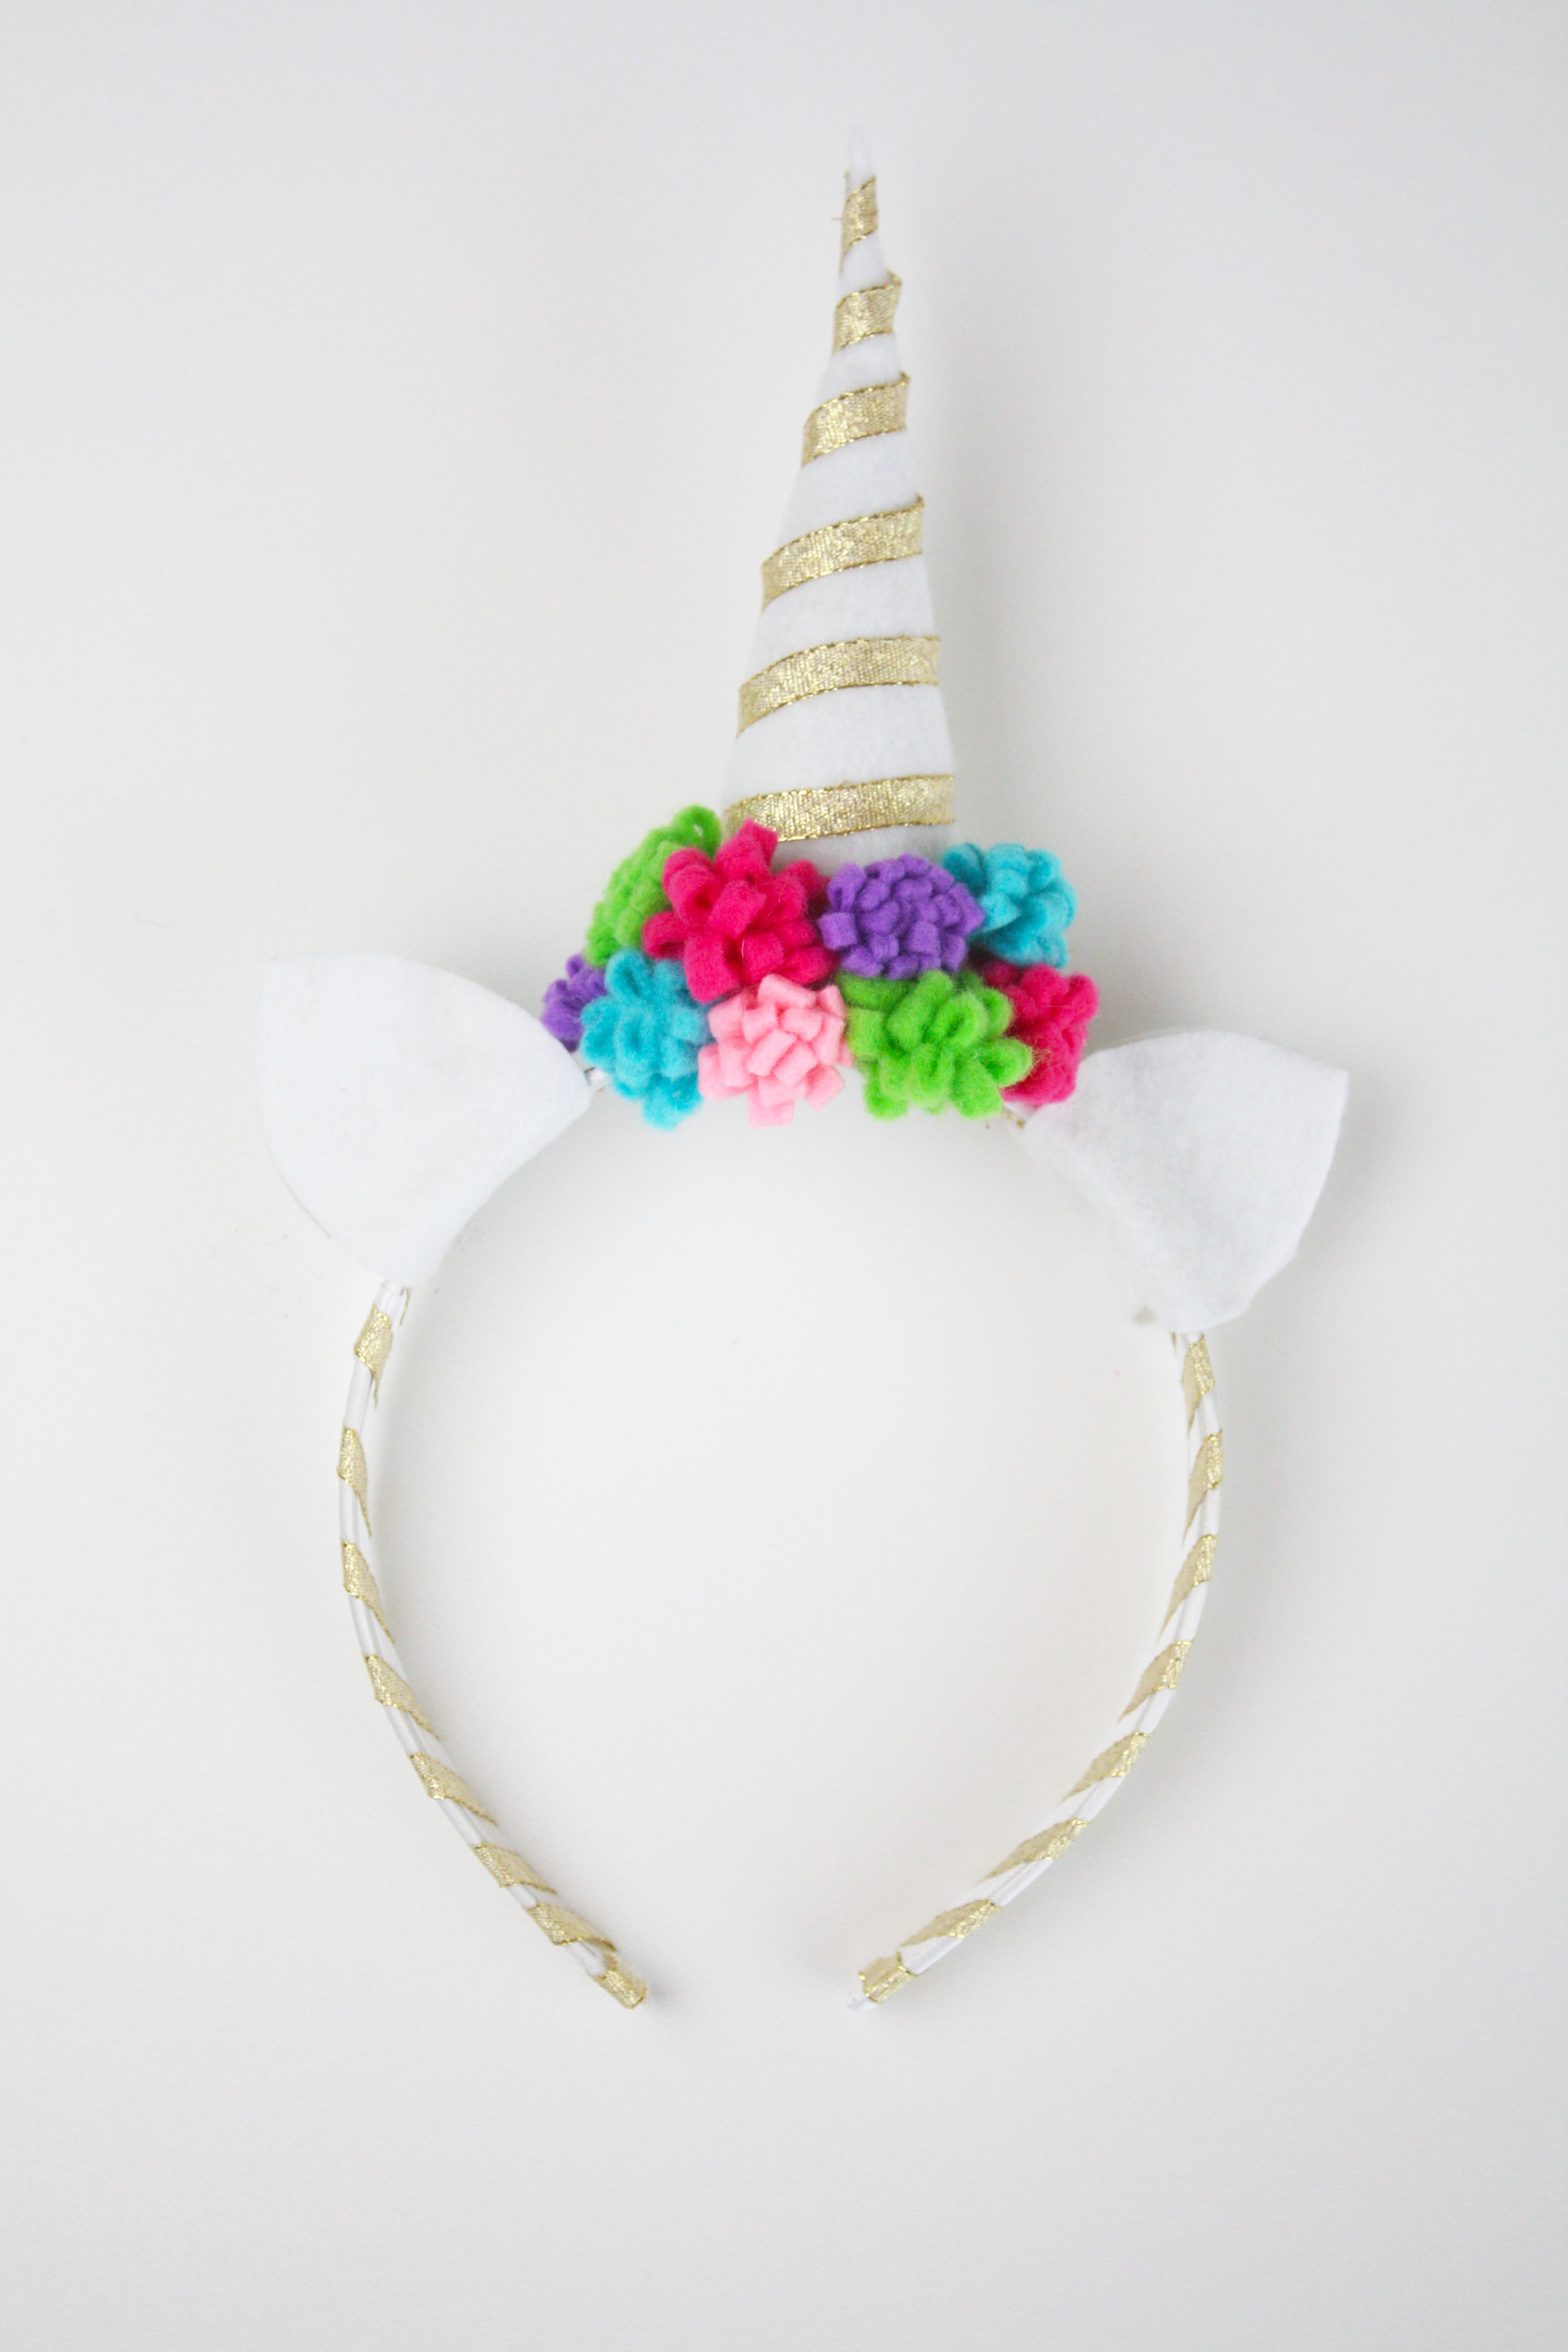 The Best Way To Make Your Own Easy Unicorn Headband Craft